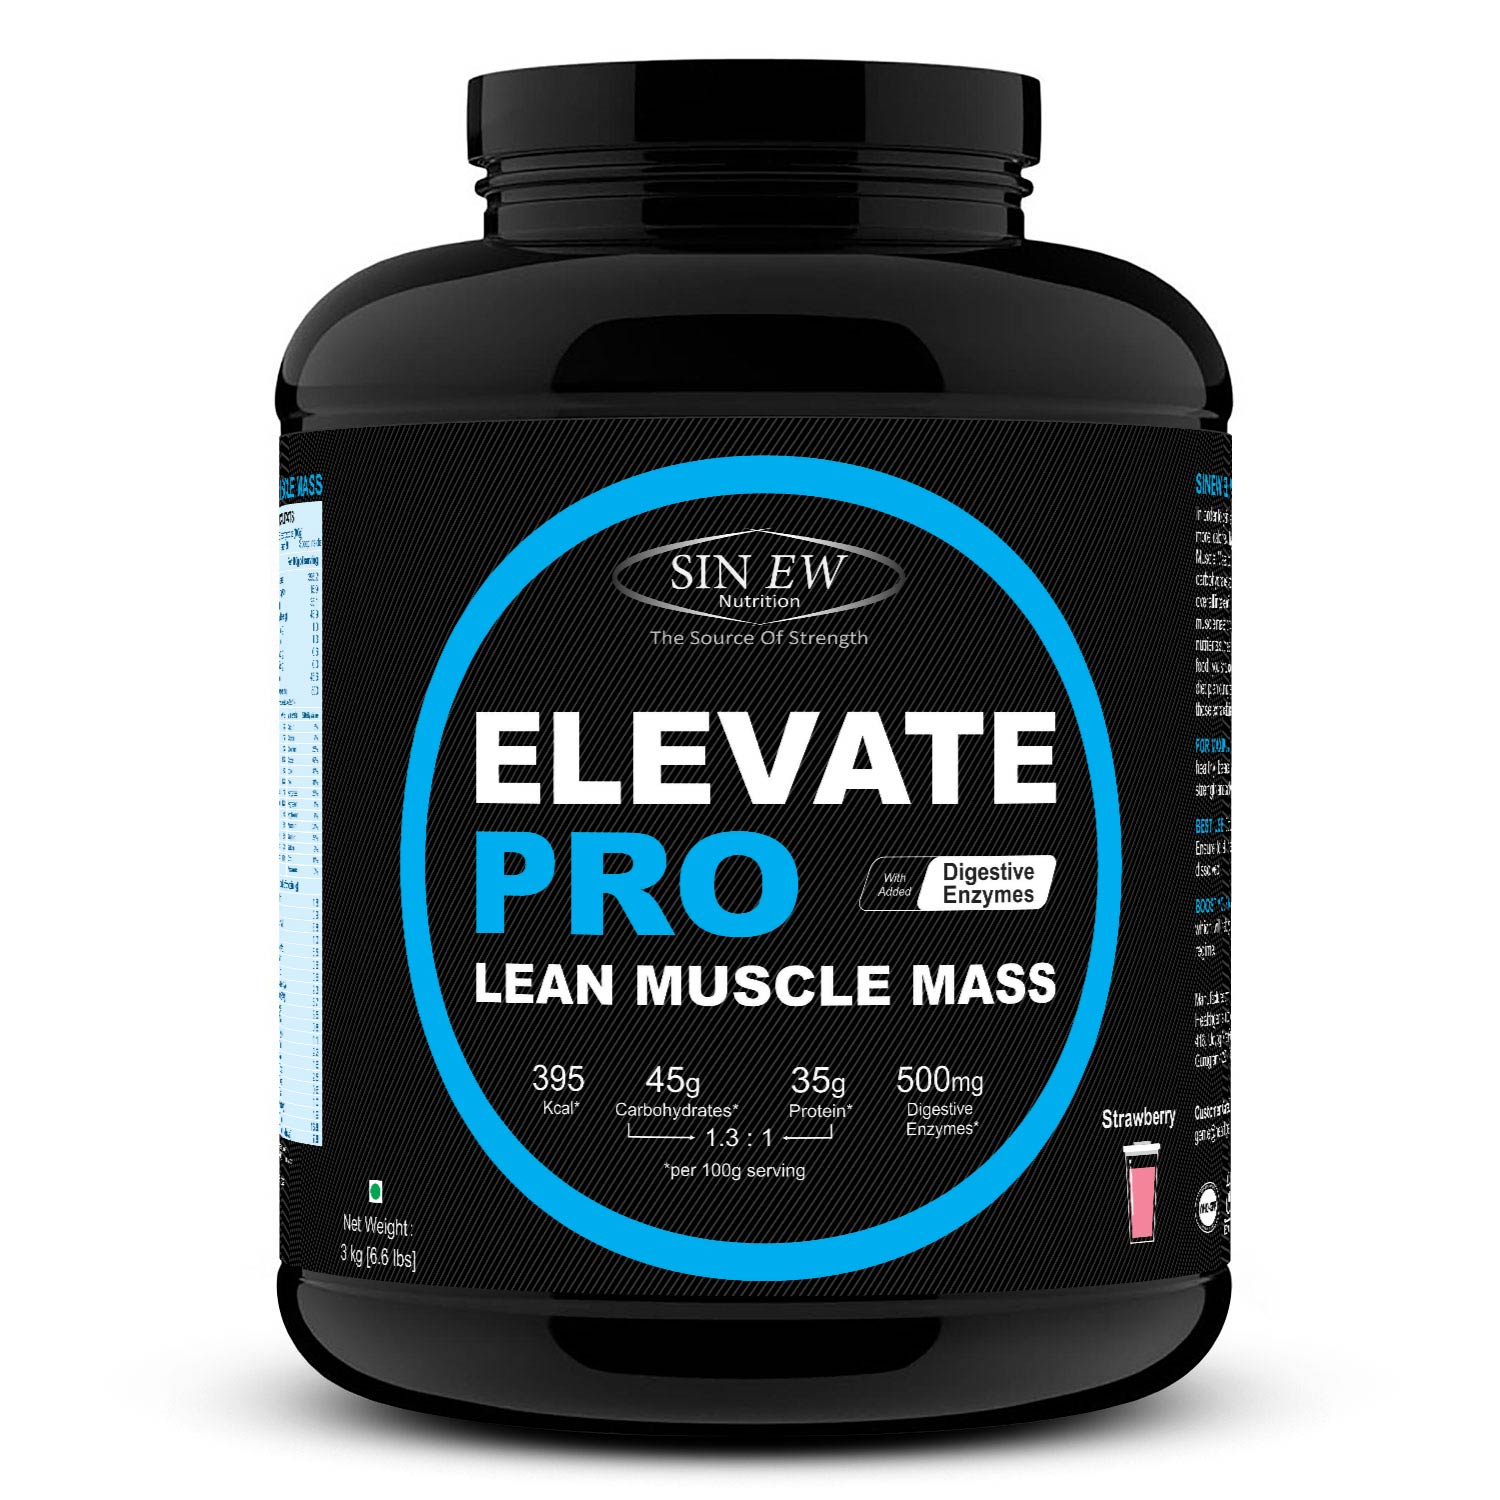 Elevate Pro Lean Muscle Mass (strawberry) 3kg F